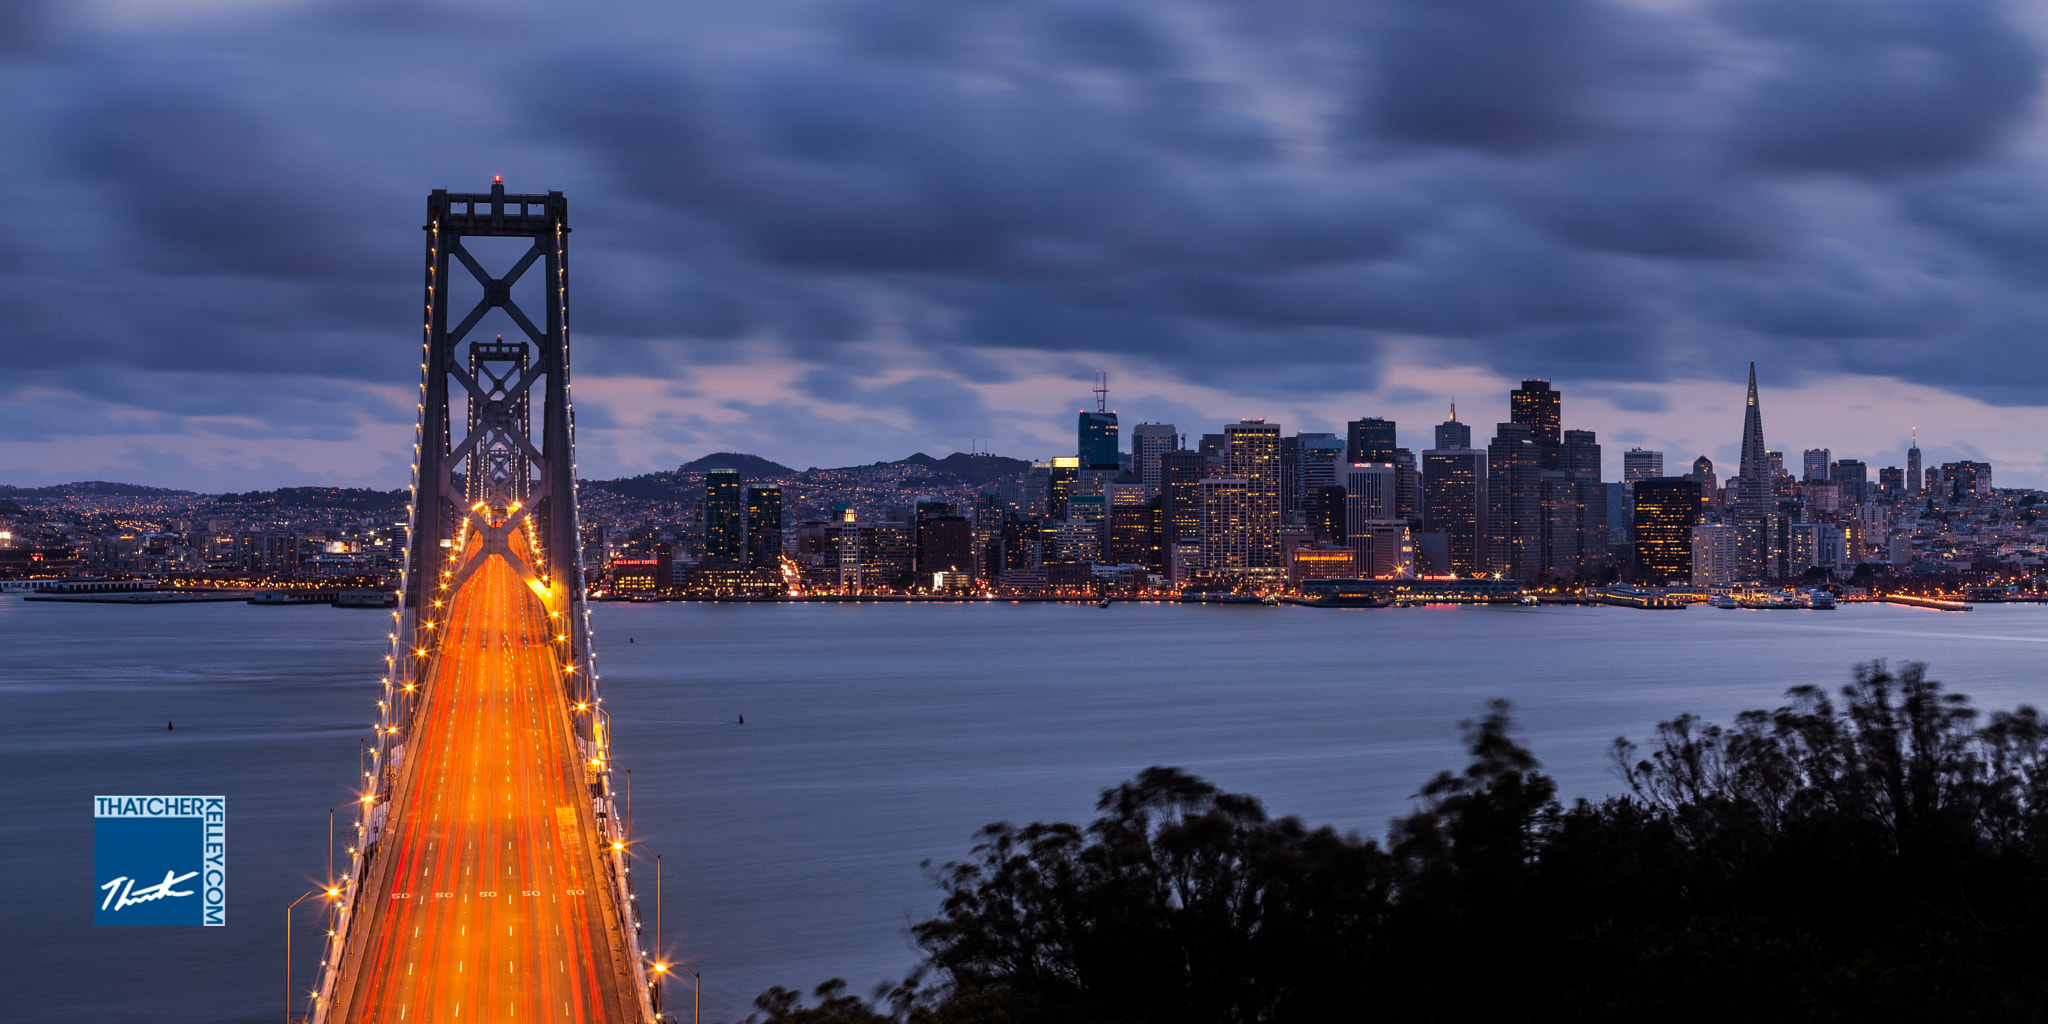 Photograph Glowing City and Bridge by Thatcher Kelley on 500px